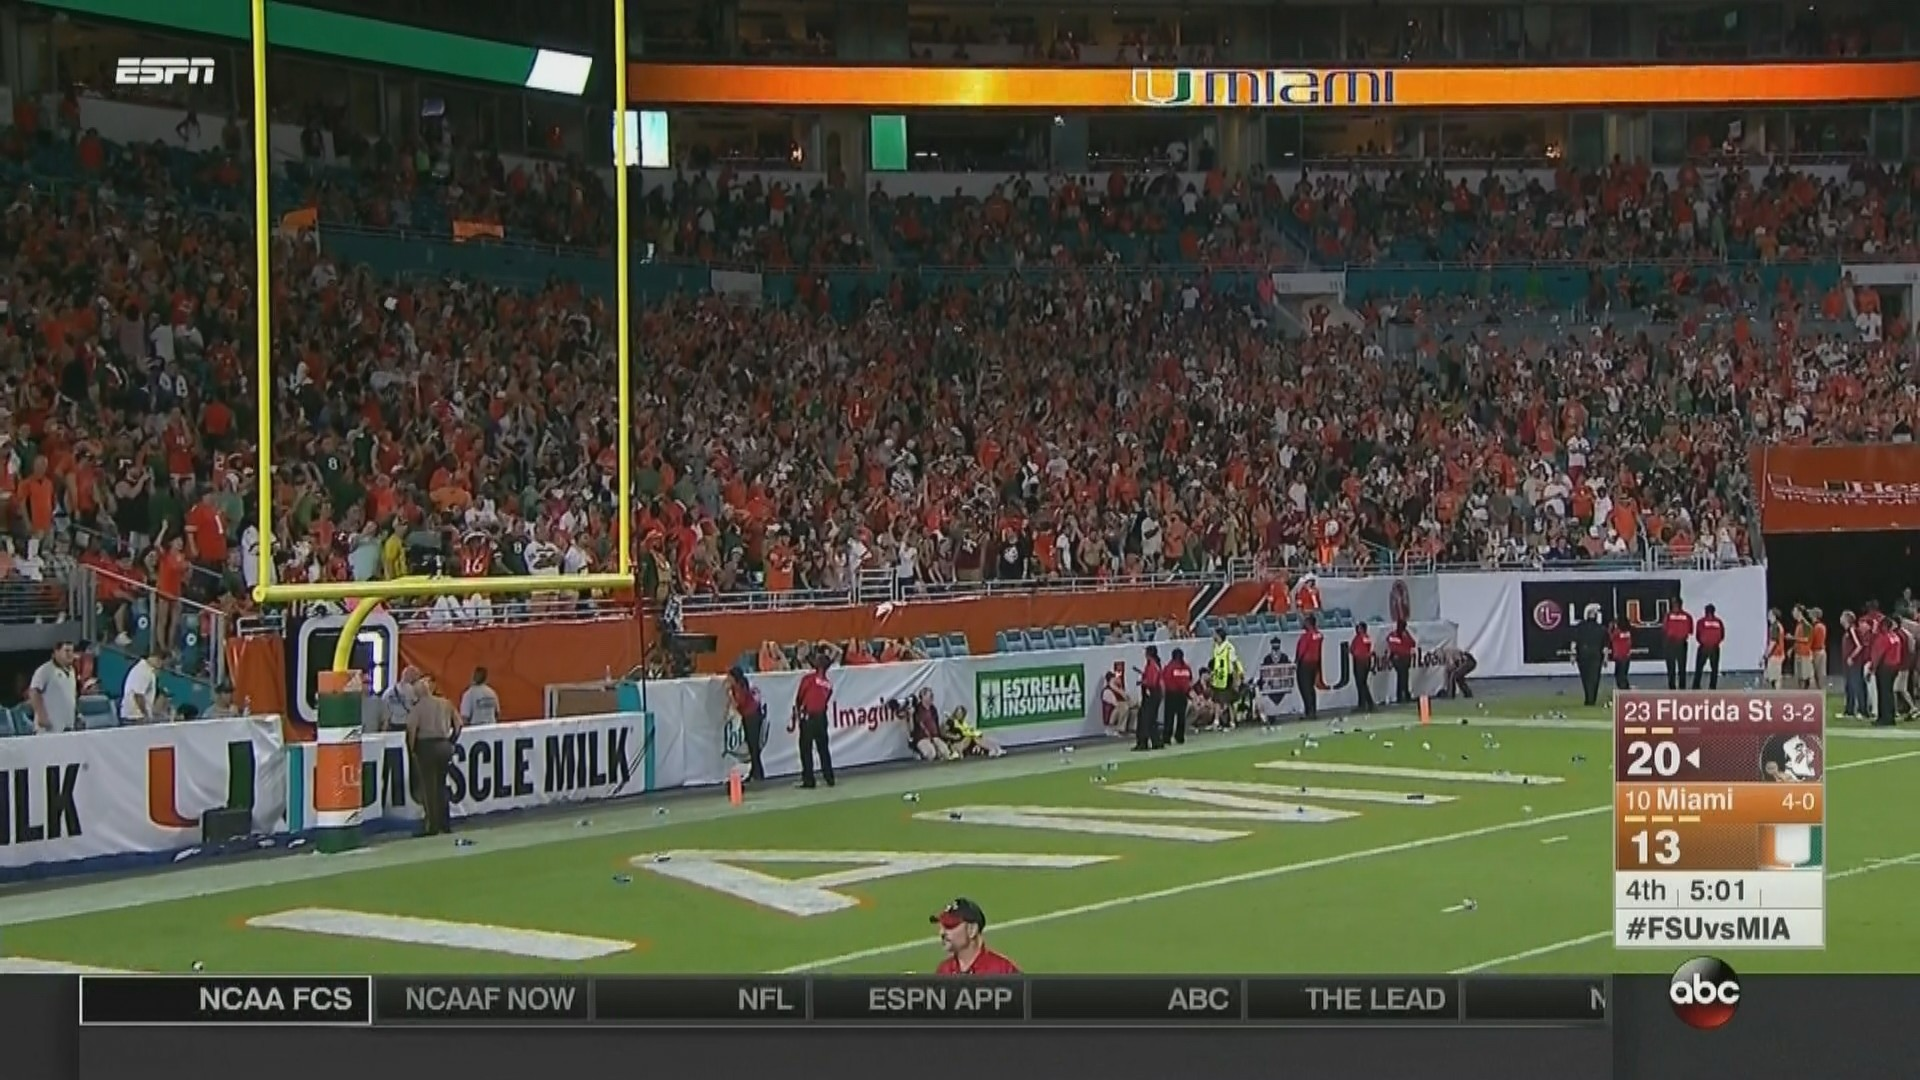 … which caused the uproar from a certain contingent of Hurricanes fans.  Miami fans were so upset, they started throwing trash on their own end  zone, …